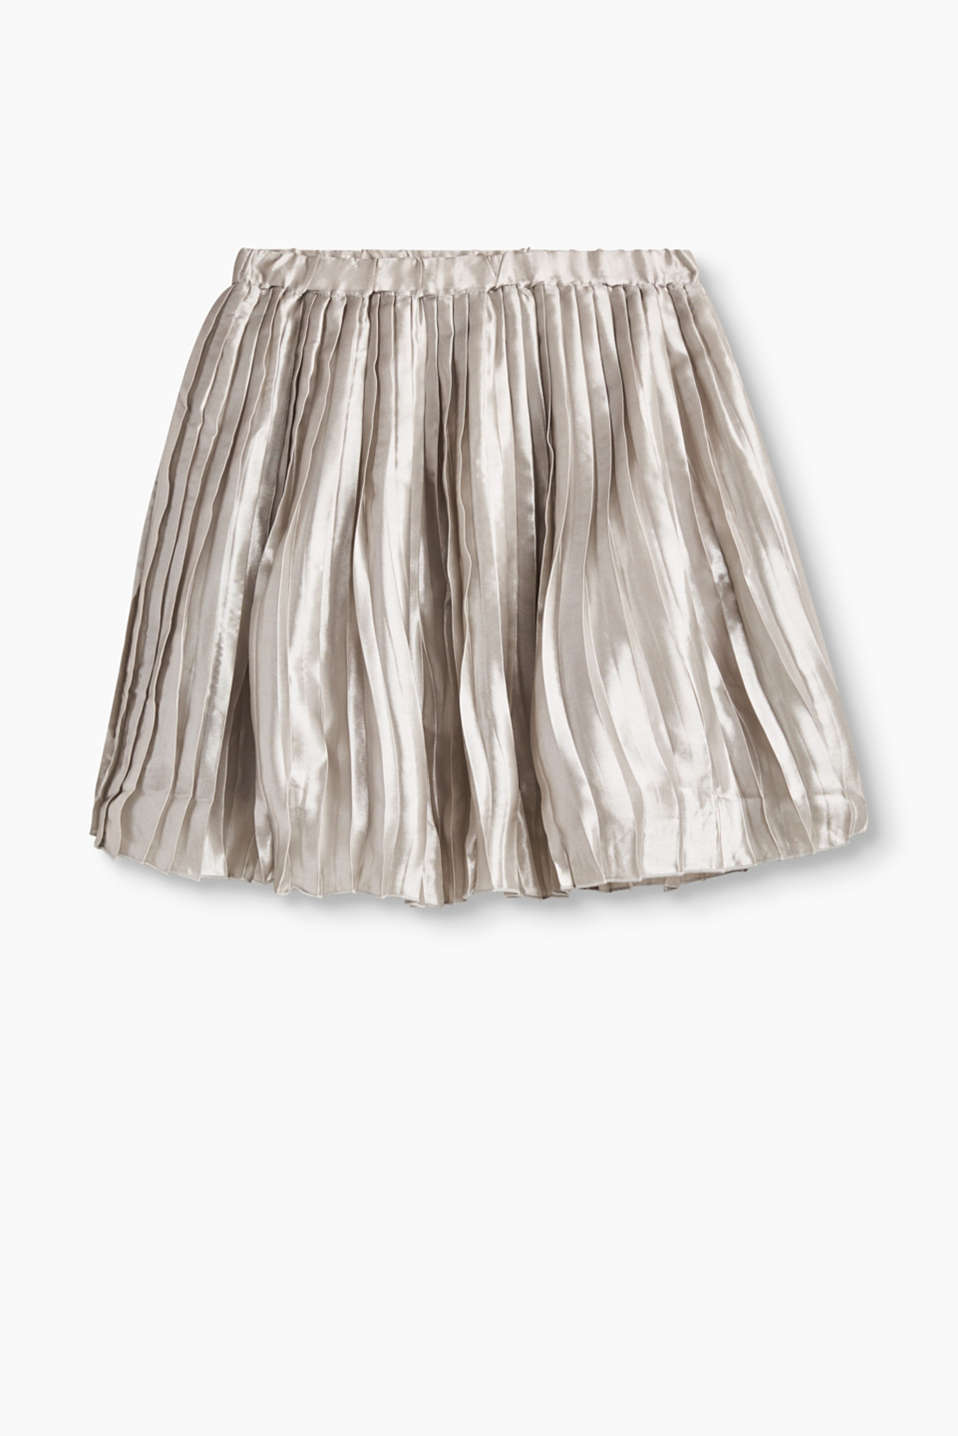 We love lush lustre! Its metallic finish makes this pleated skirt perfect for the party season.